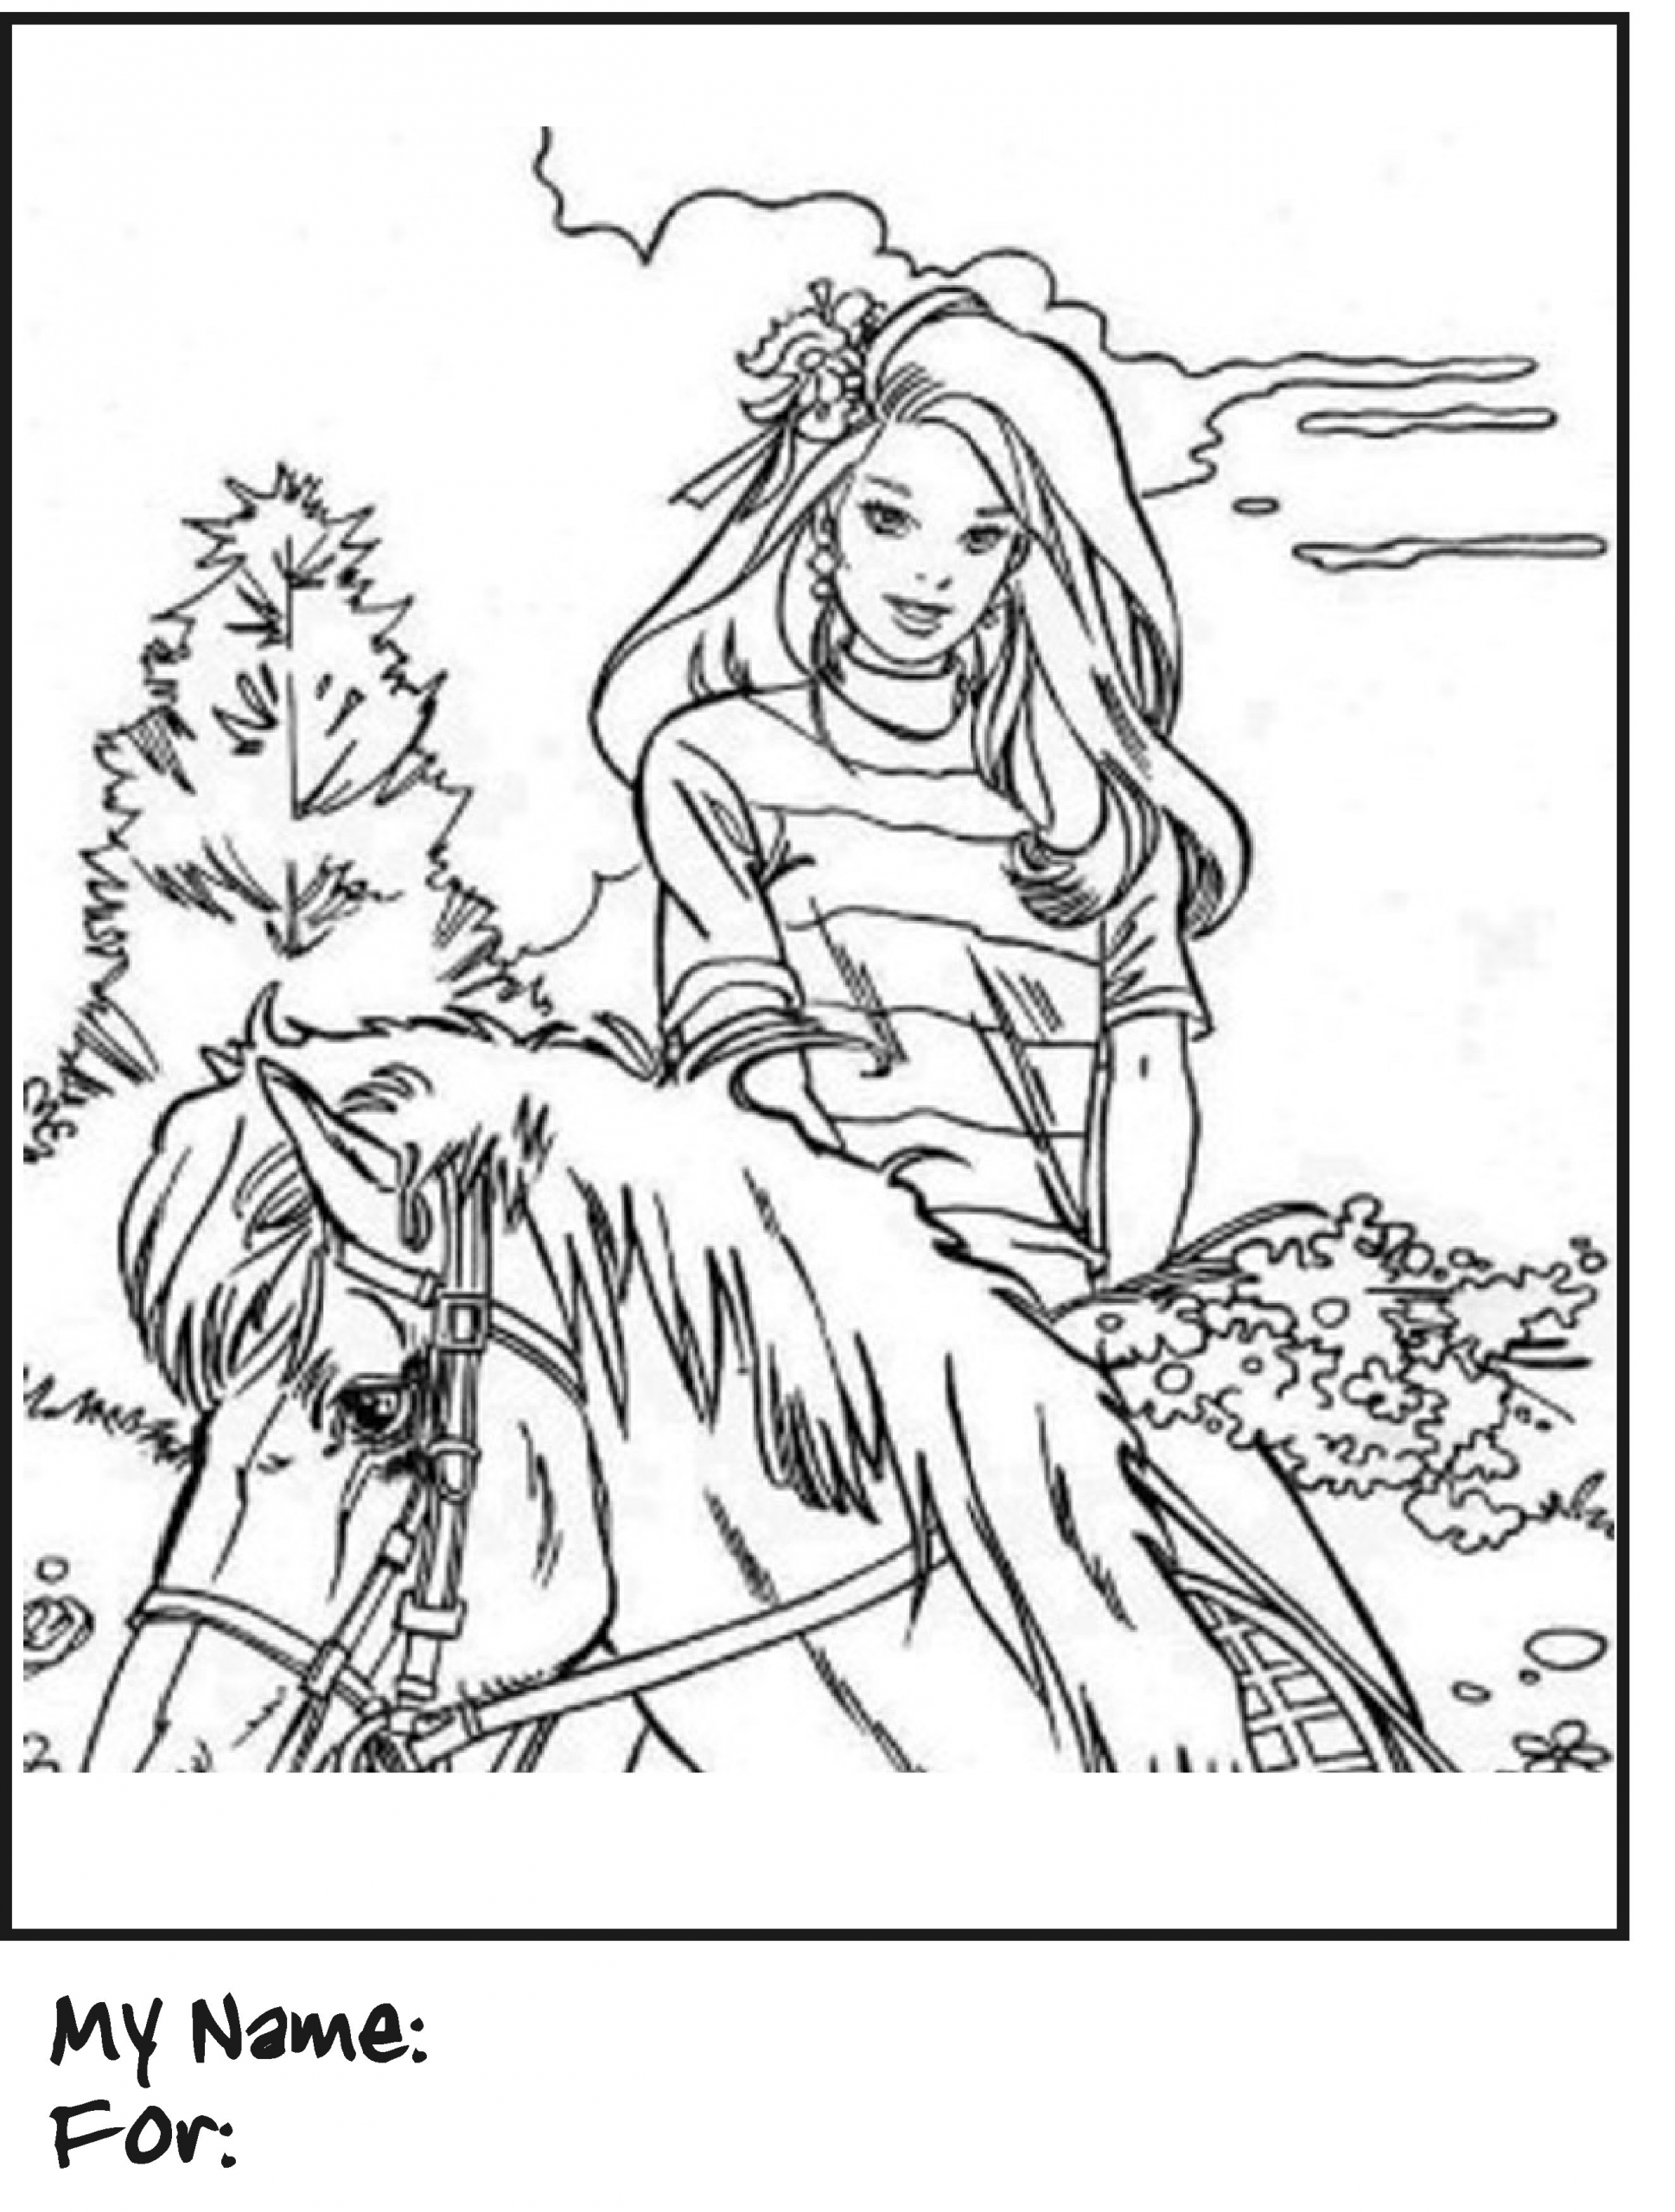 Barbie Horse Coloring Page Youngandtae Com Horse Coloring Pages Horse Coloring Barbie Horse [ 2560 x 1938 Pixel ]